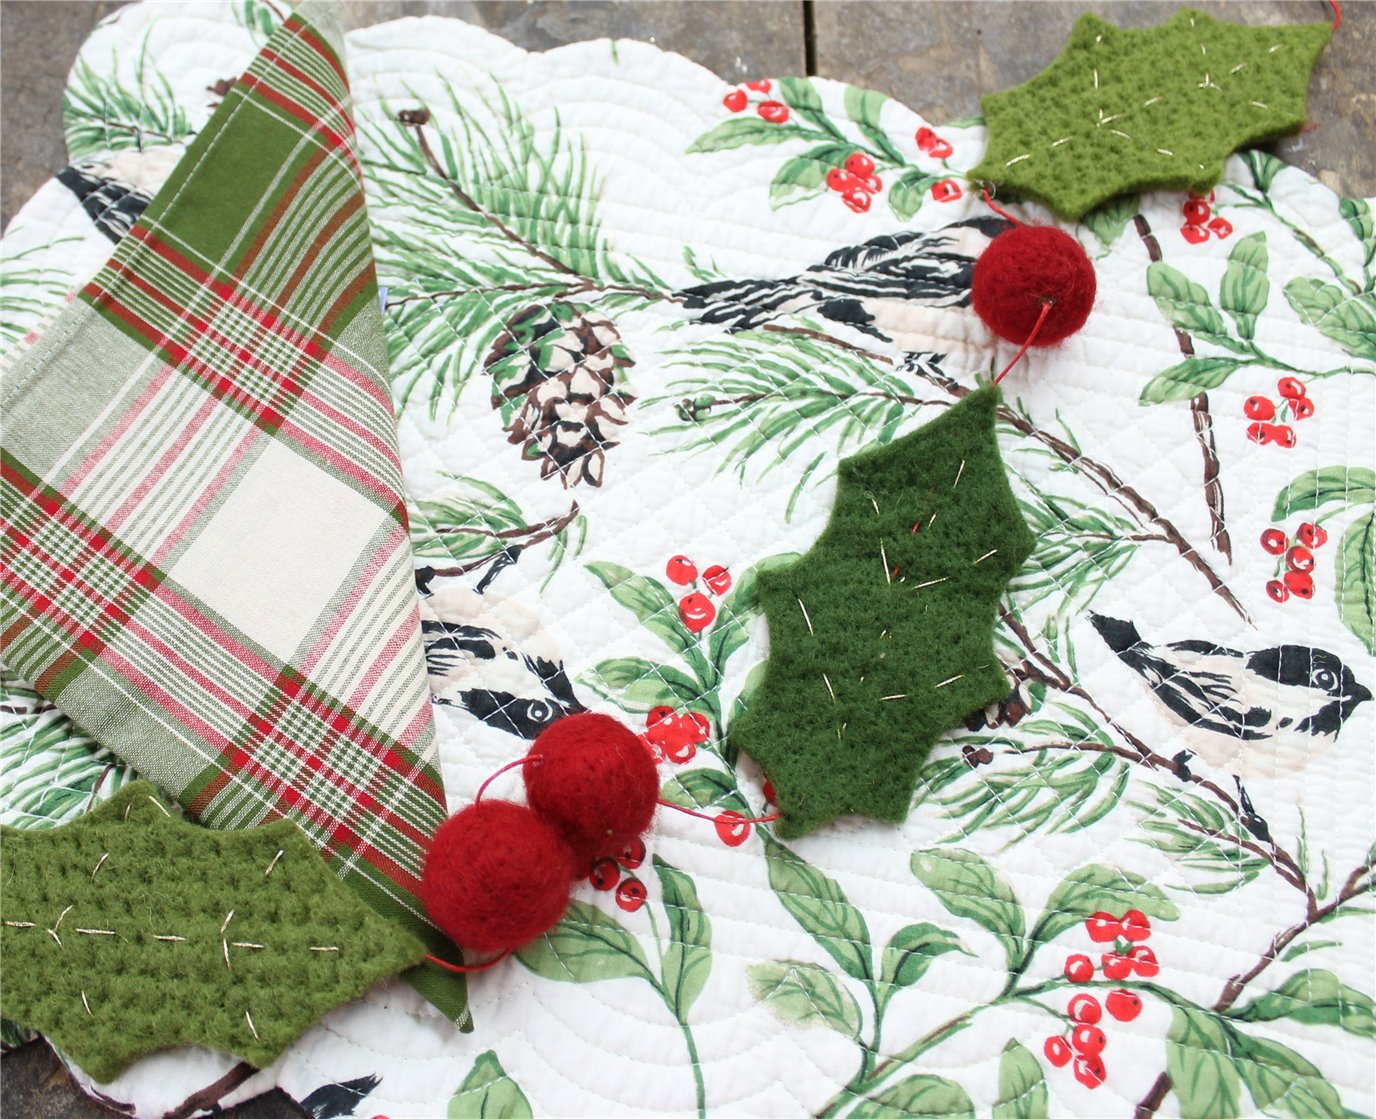 Holiday Tabletop: Placemats, Napkins, Accessories